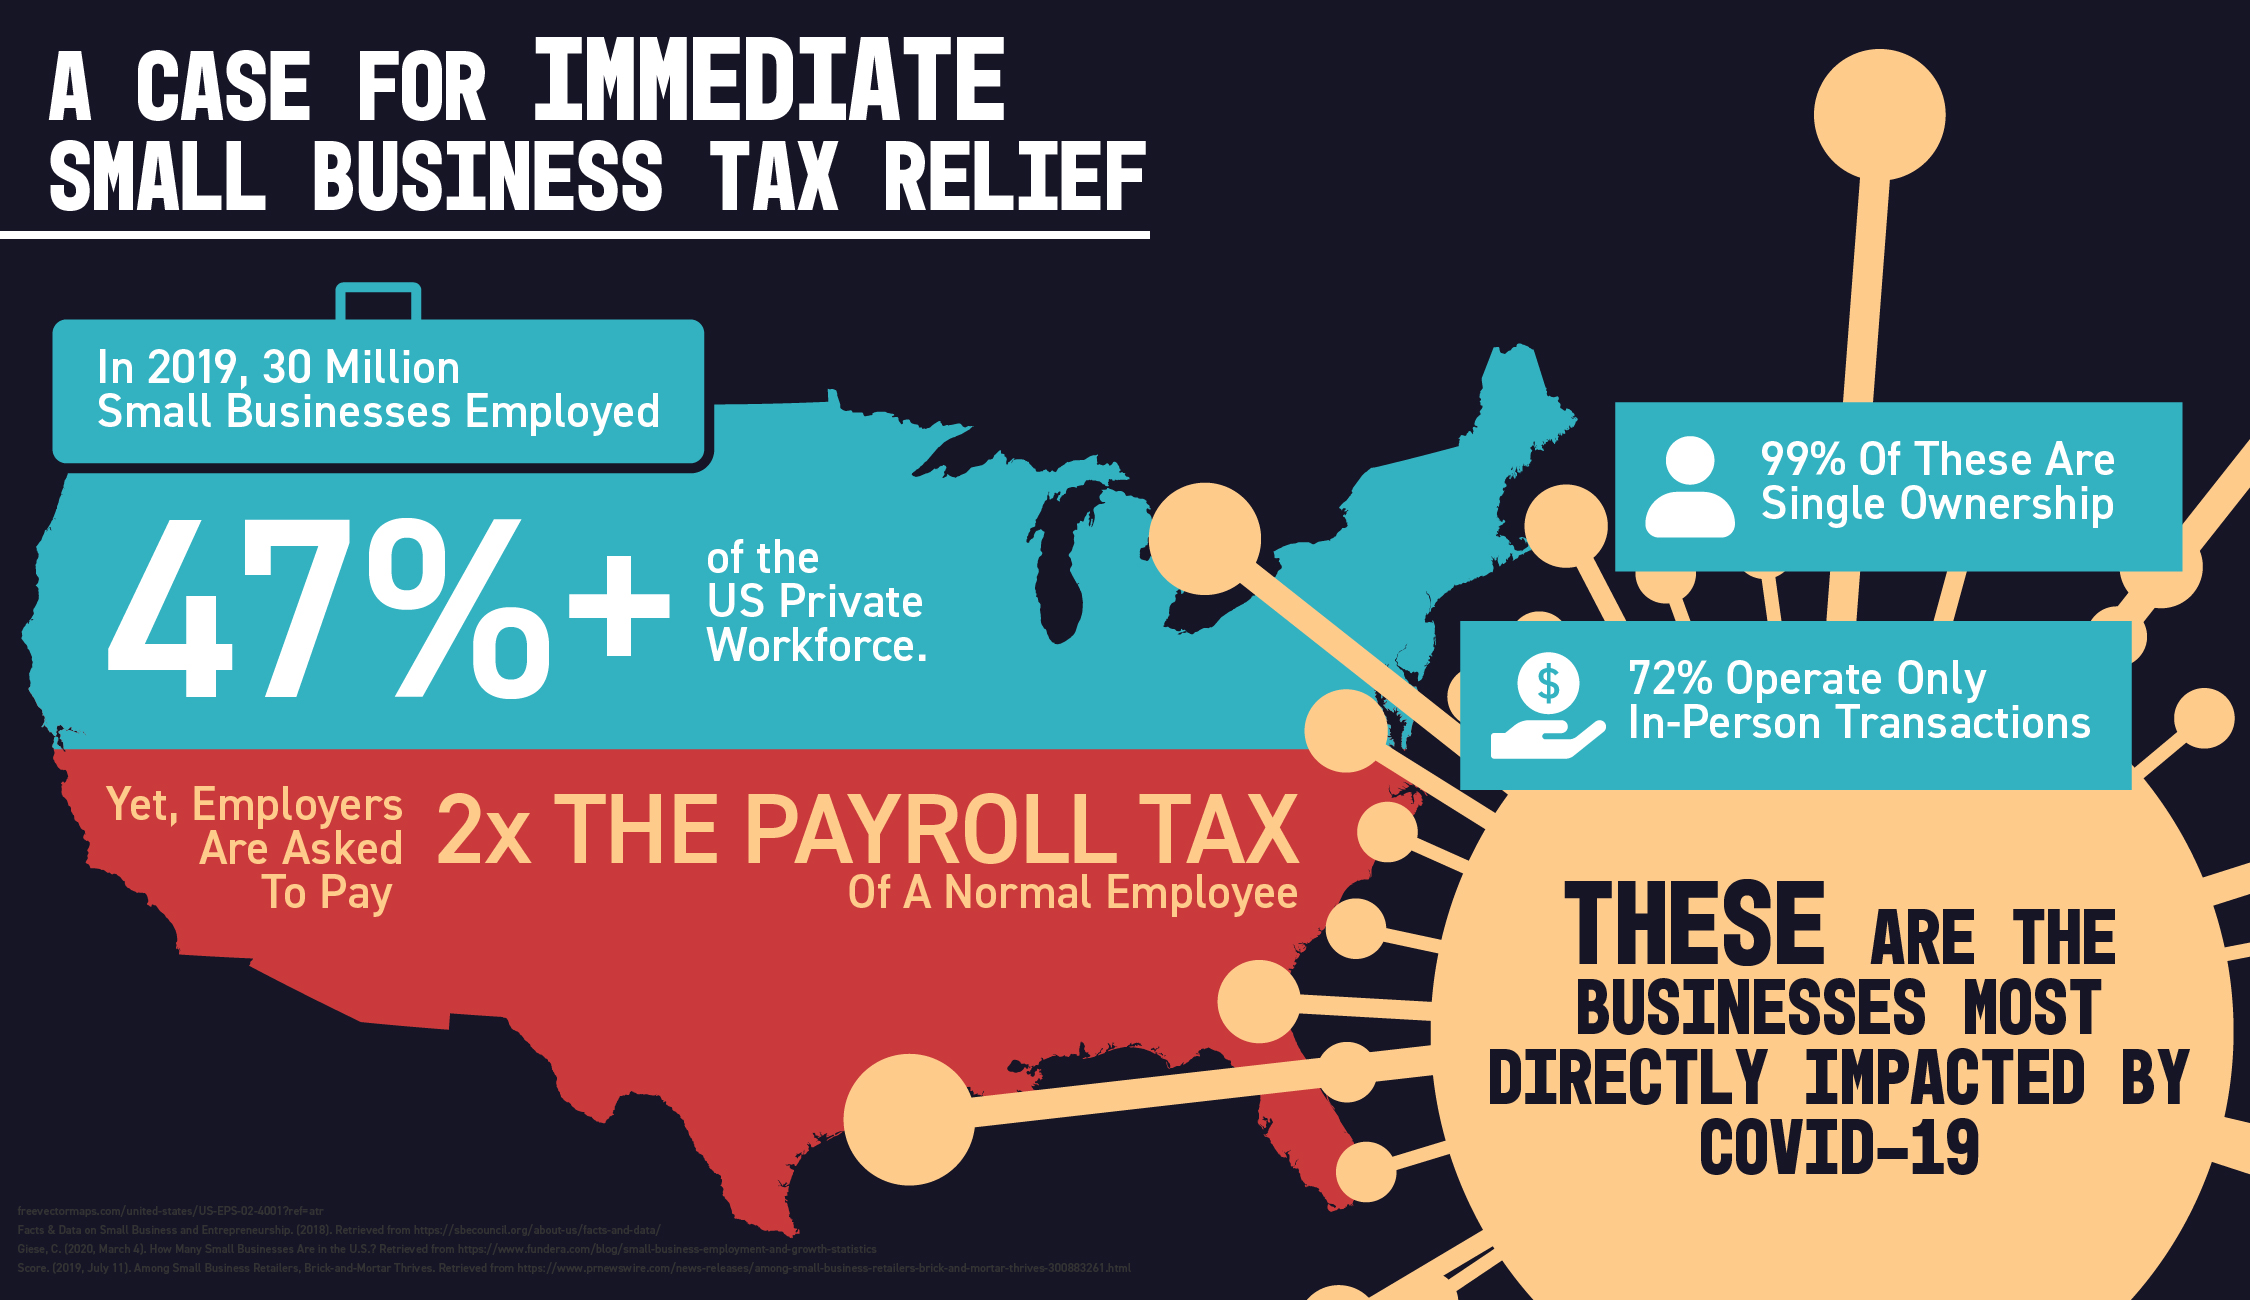 The Case for Immediate Small Business Tax Relief